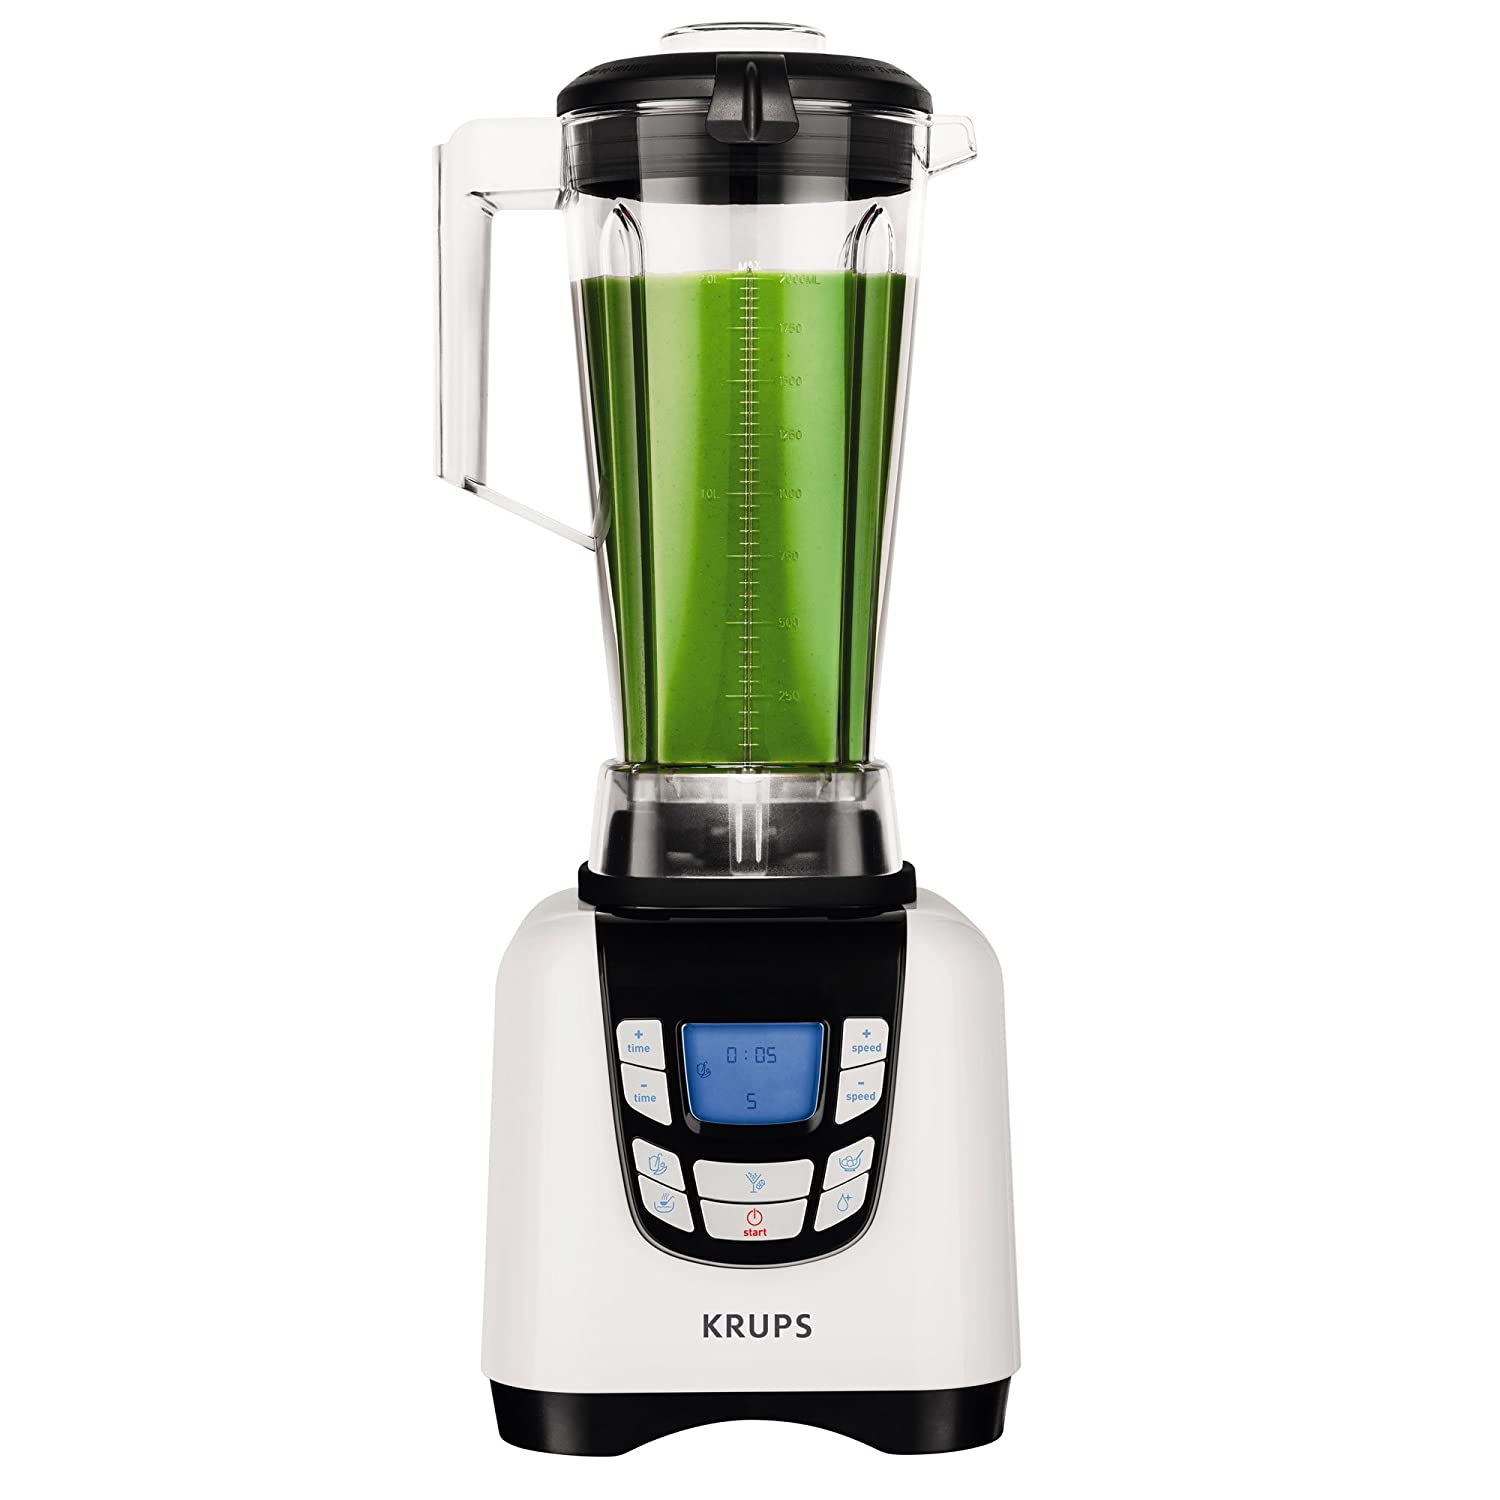 Krups kb7021 batidora High Speed, 2 L, 1500 W, Plata/Negro: Amazon.es: Hogar